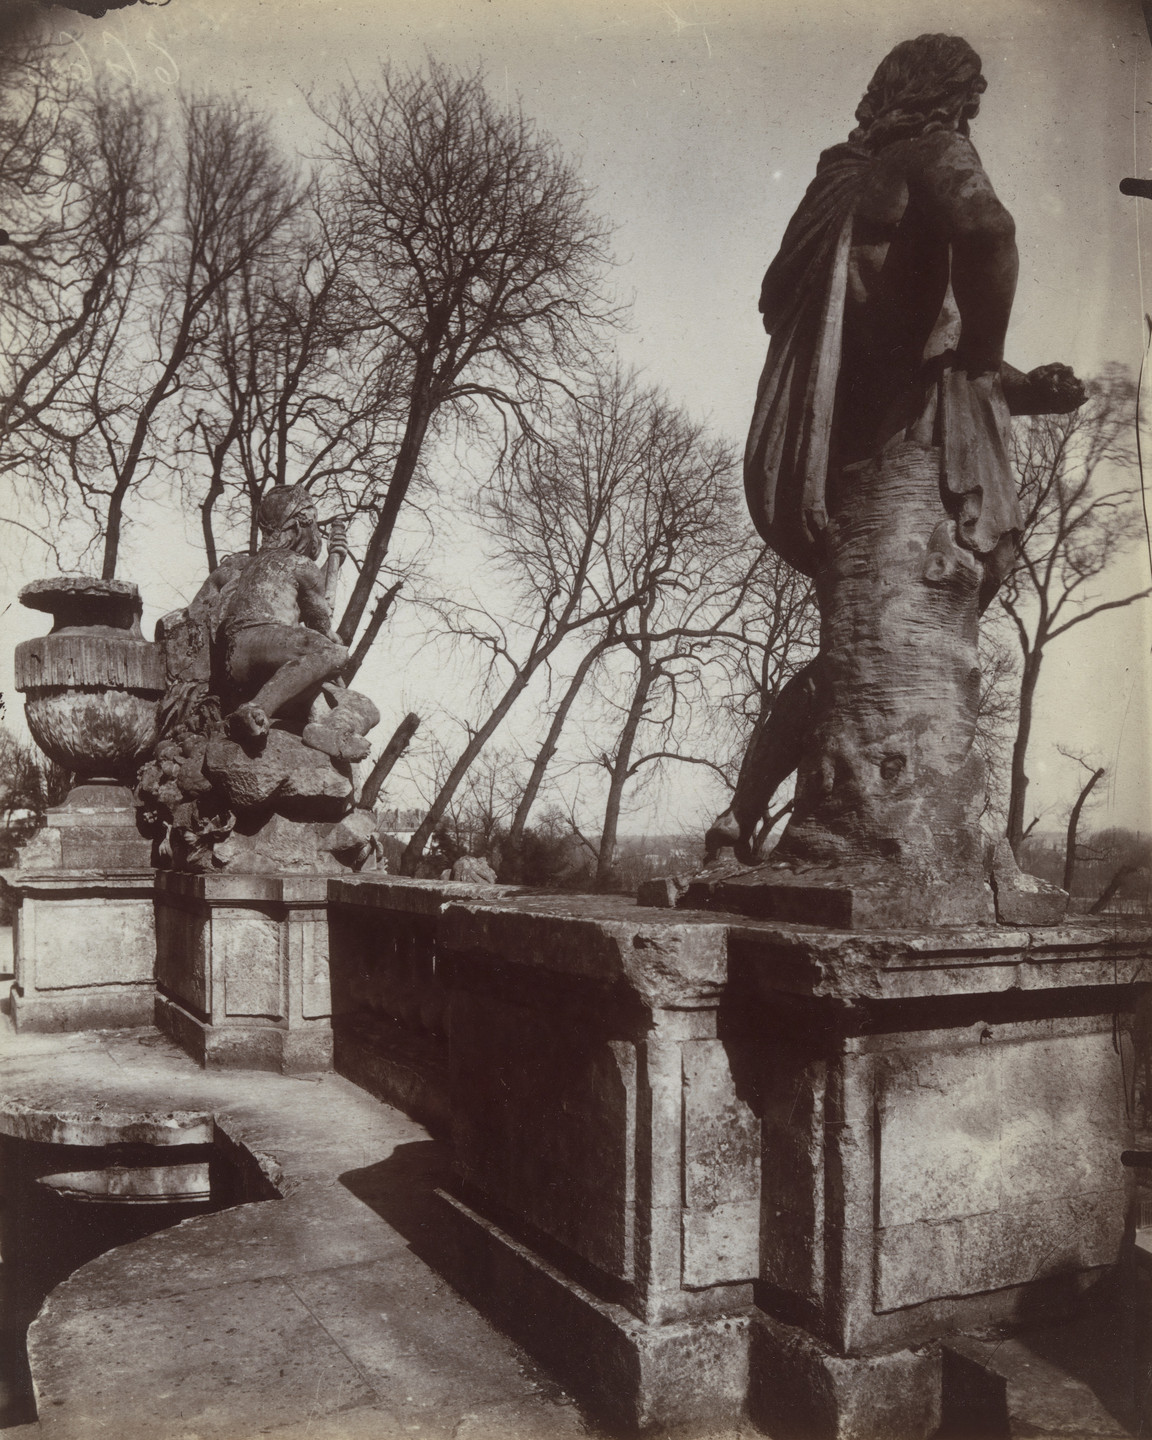 Eugène Atget. Saint-Cloud. 1907